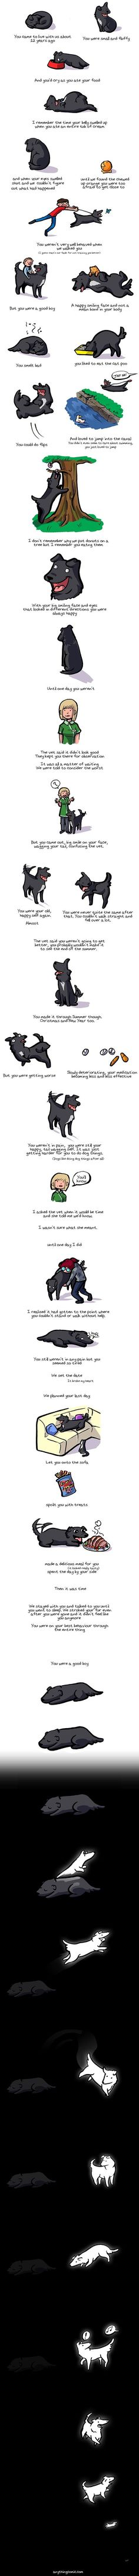 Heartwarming Illustration Of A Dog's Life Will Make You Want To Hug Your Pup Forever (Anything Comic)